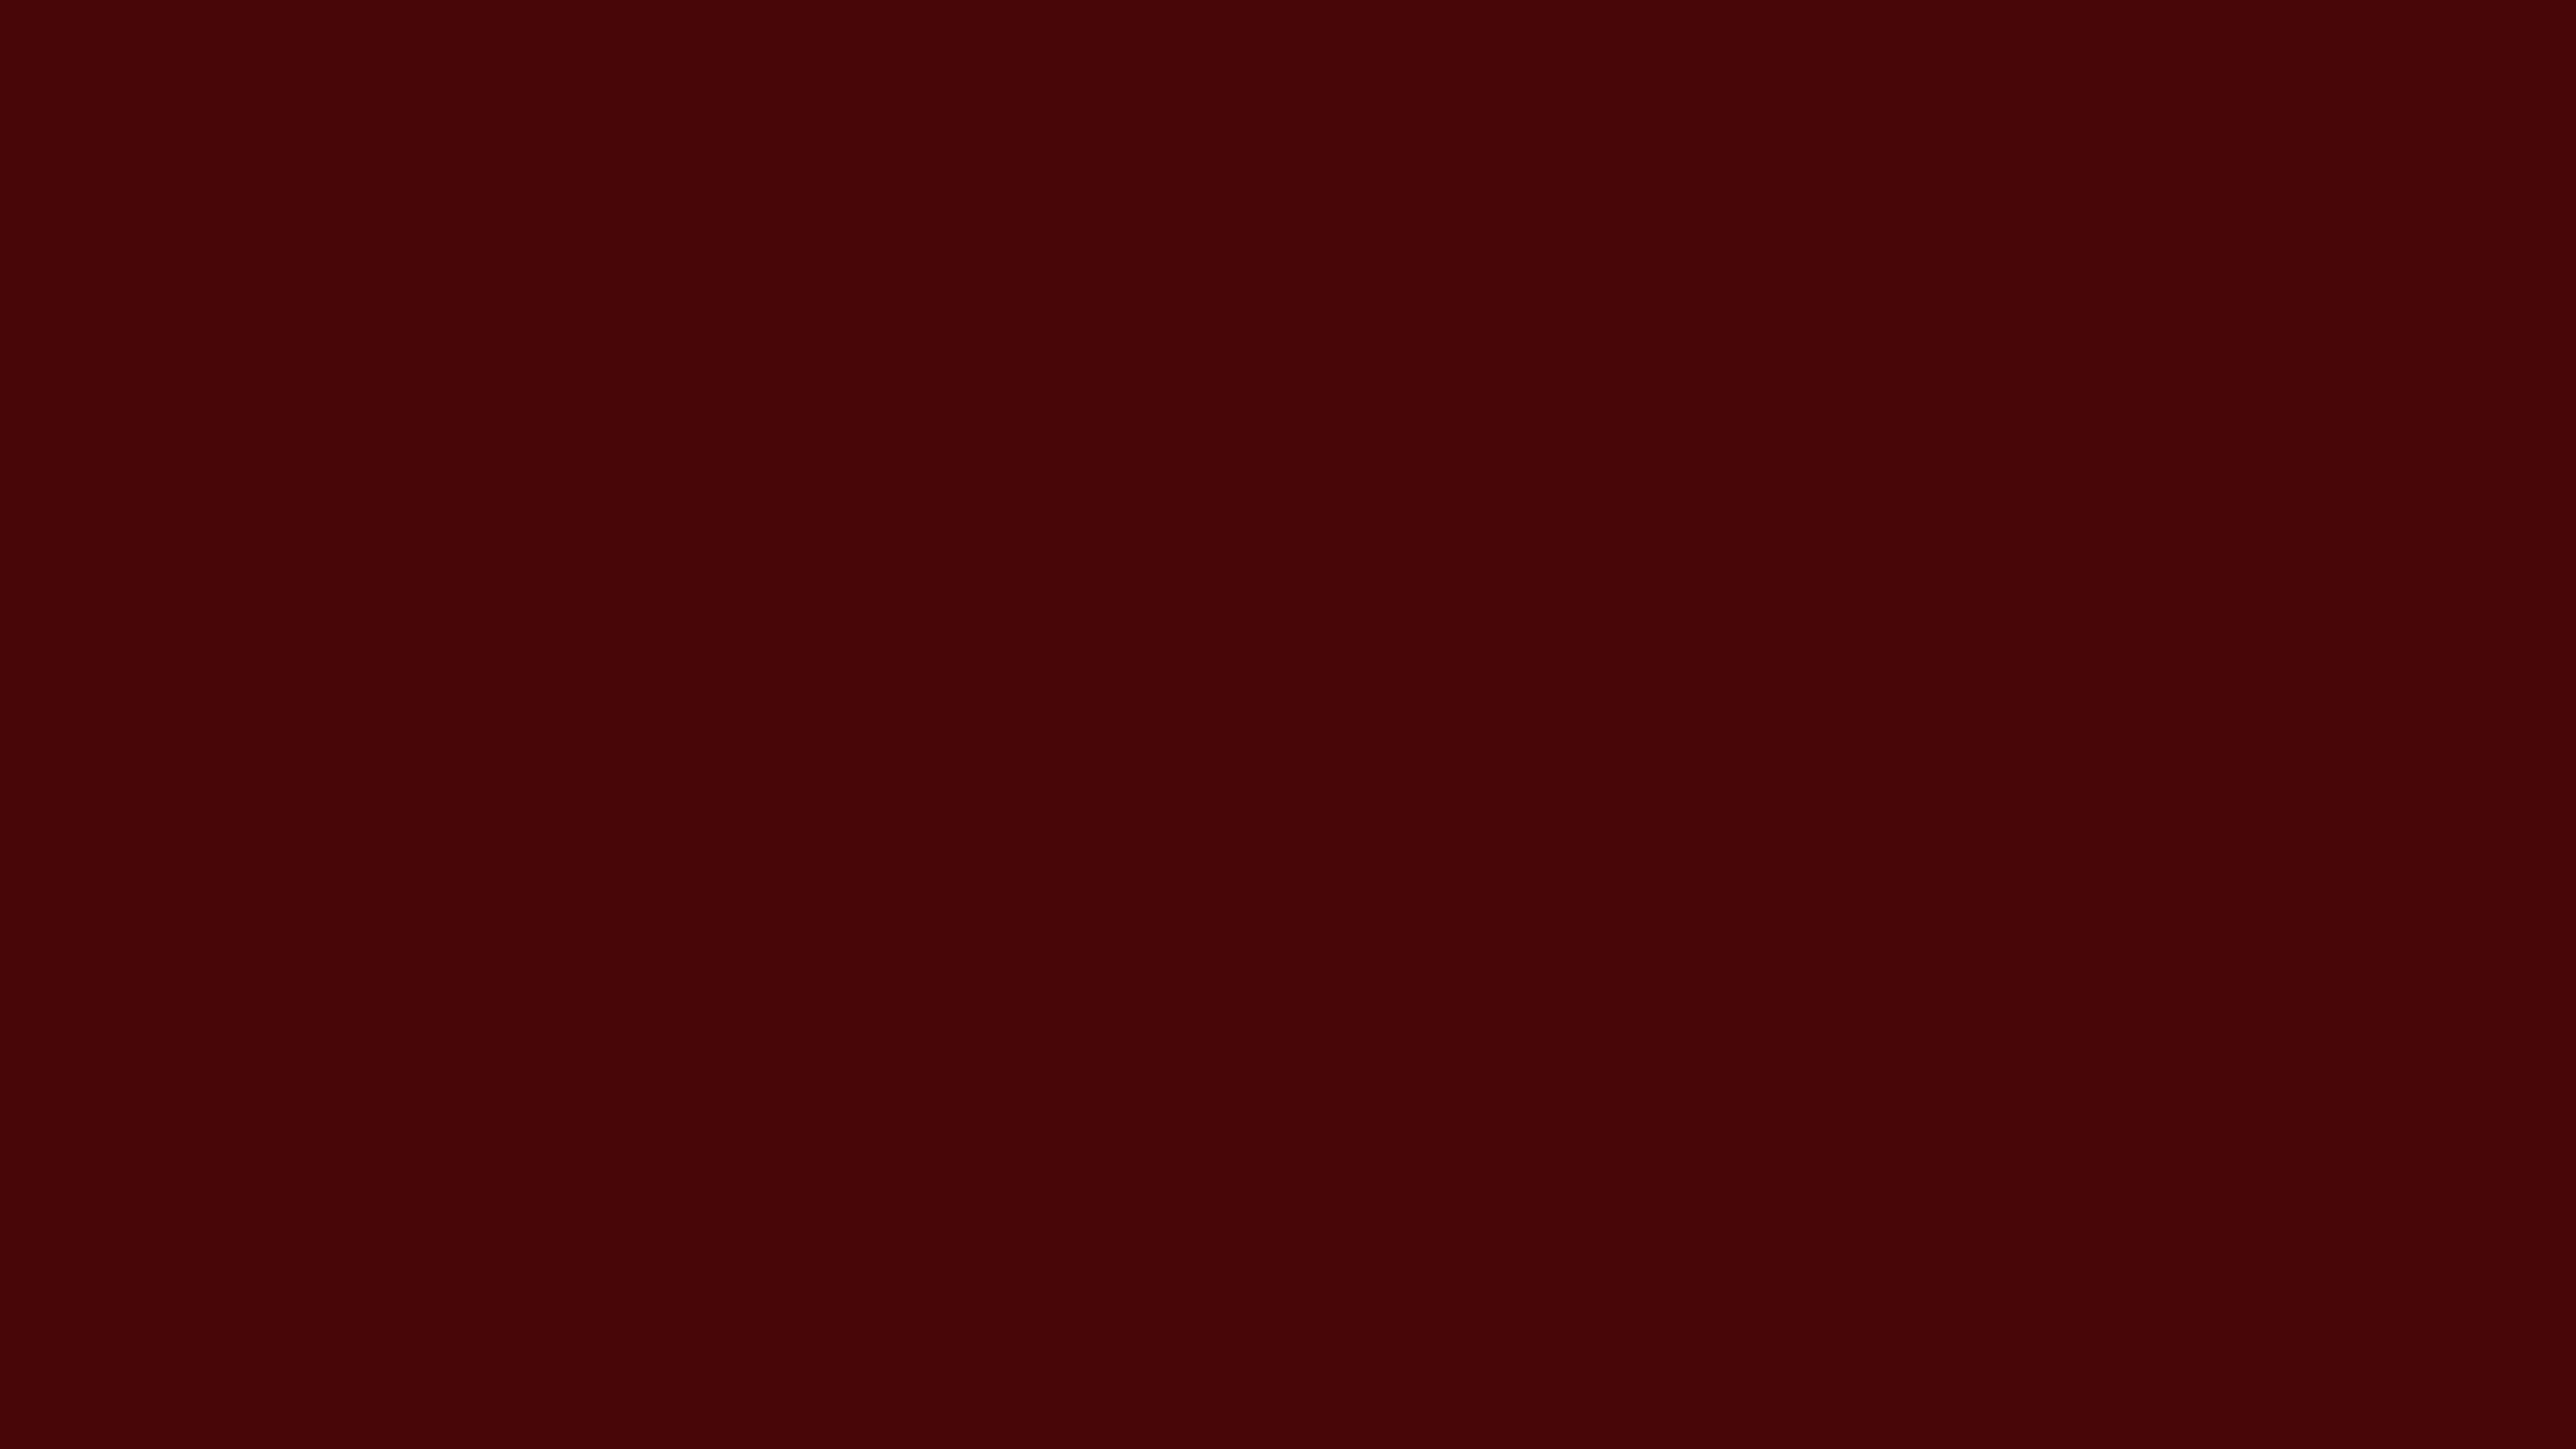 5120x2880 Bulgarian Rose Solid Color Background